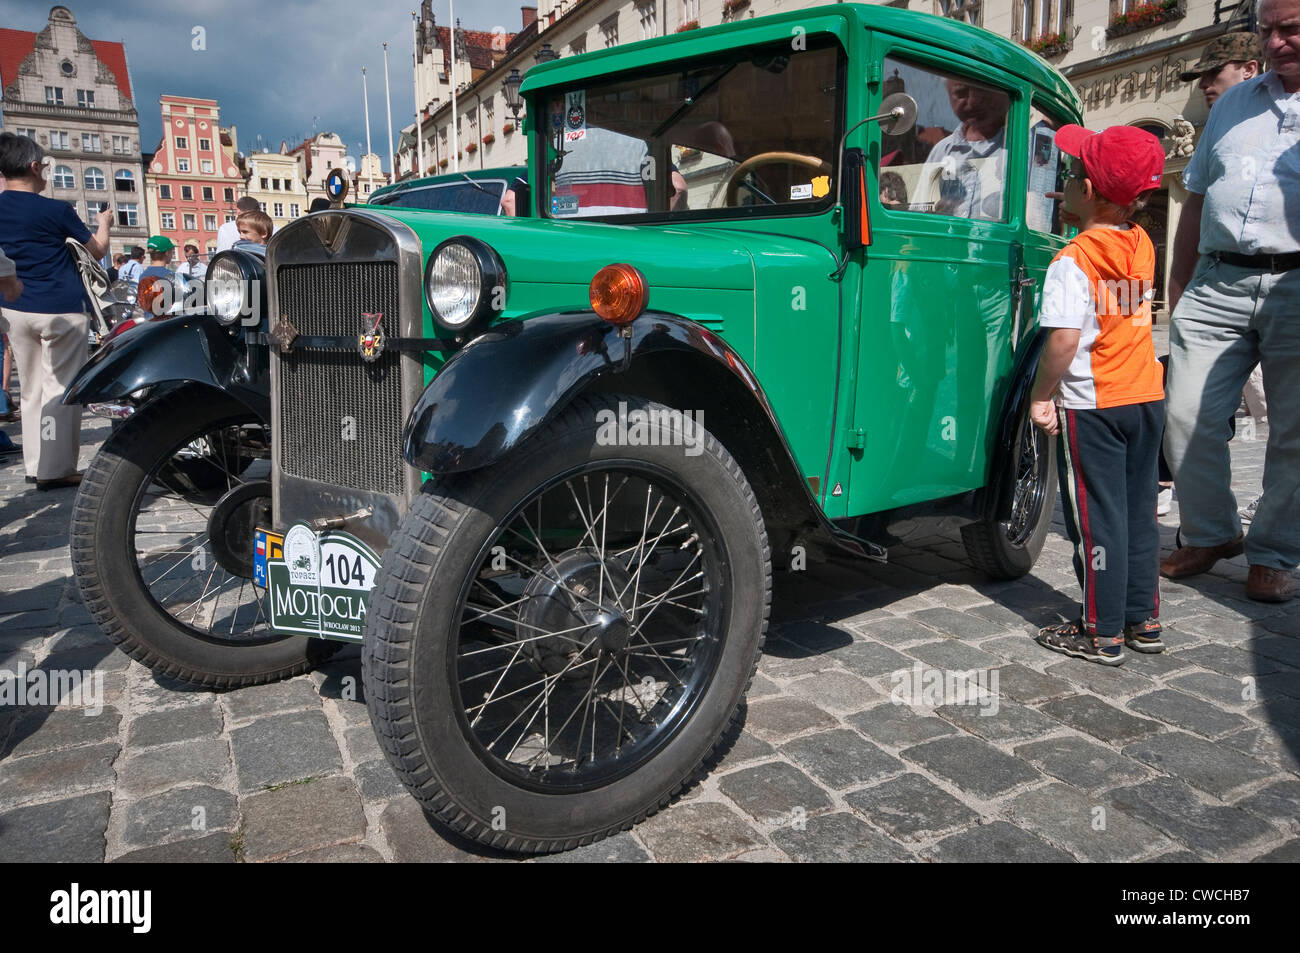 1929 Bmw Dixie At Motoclassic Car Show At Rynek Market Square In